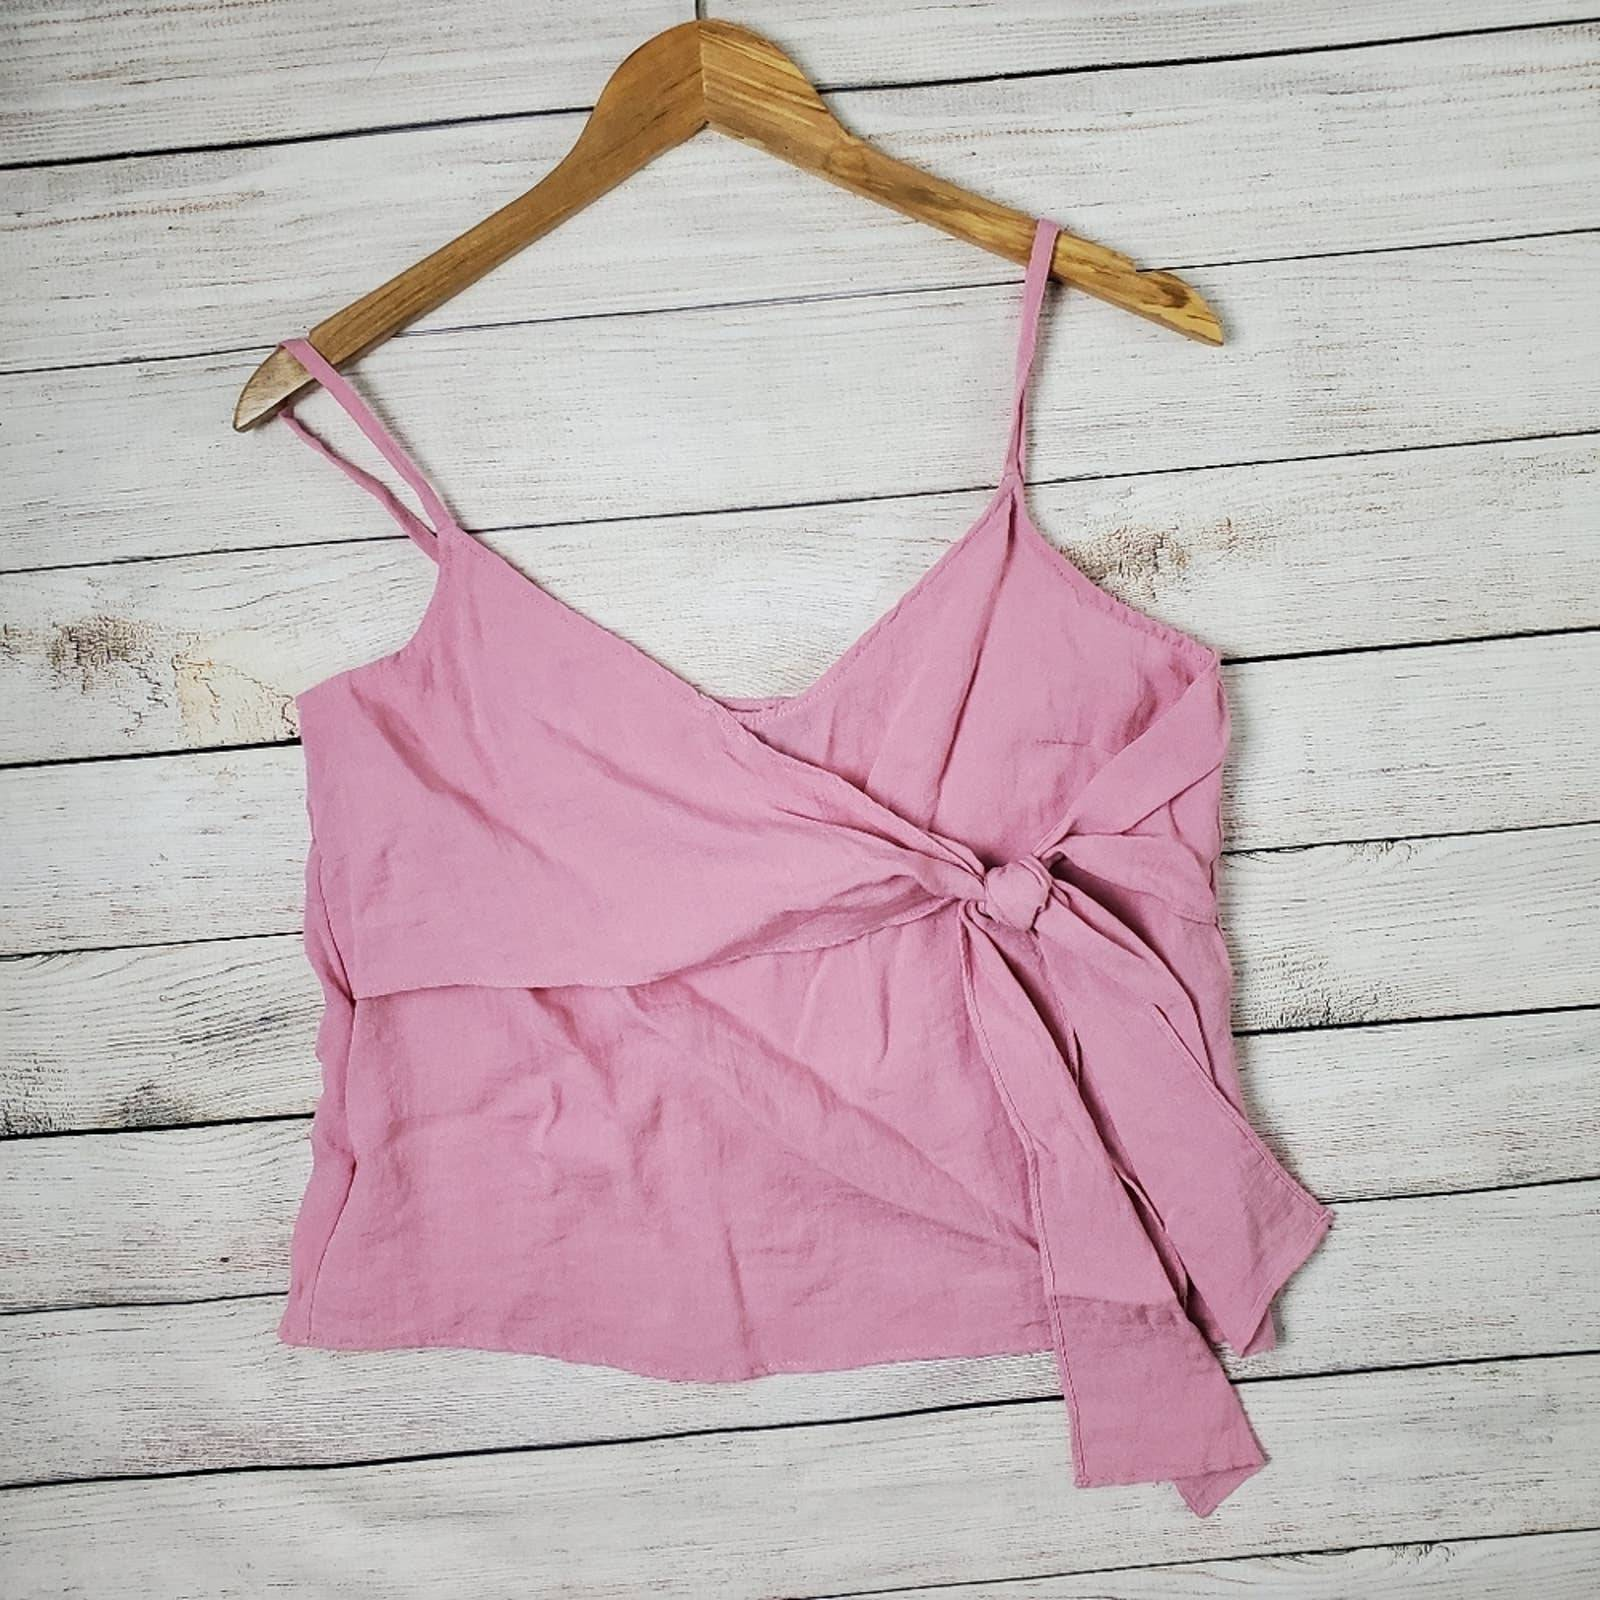 Topshop pink knot / bow tank